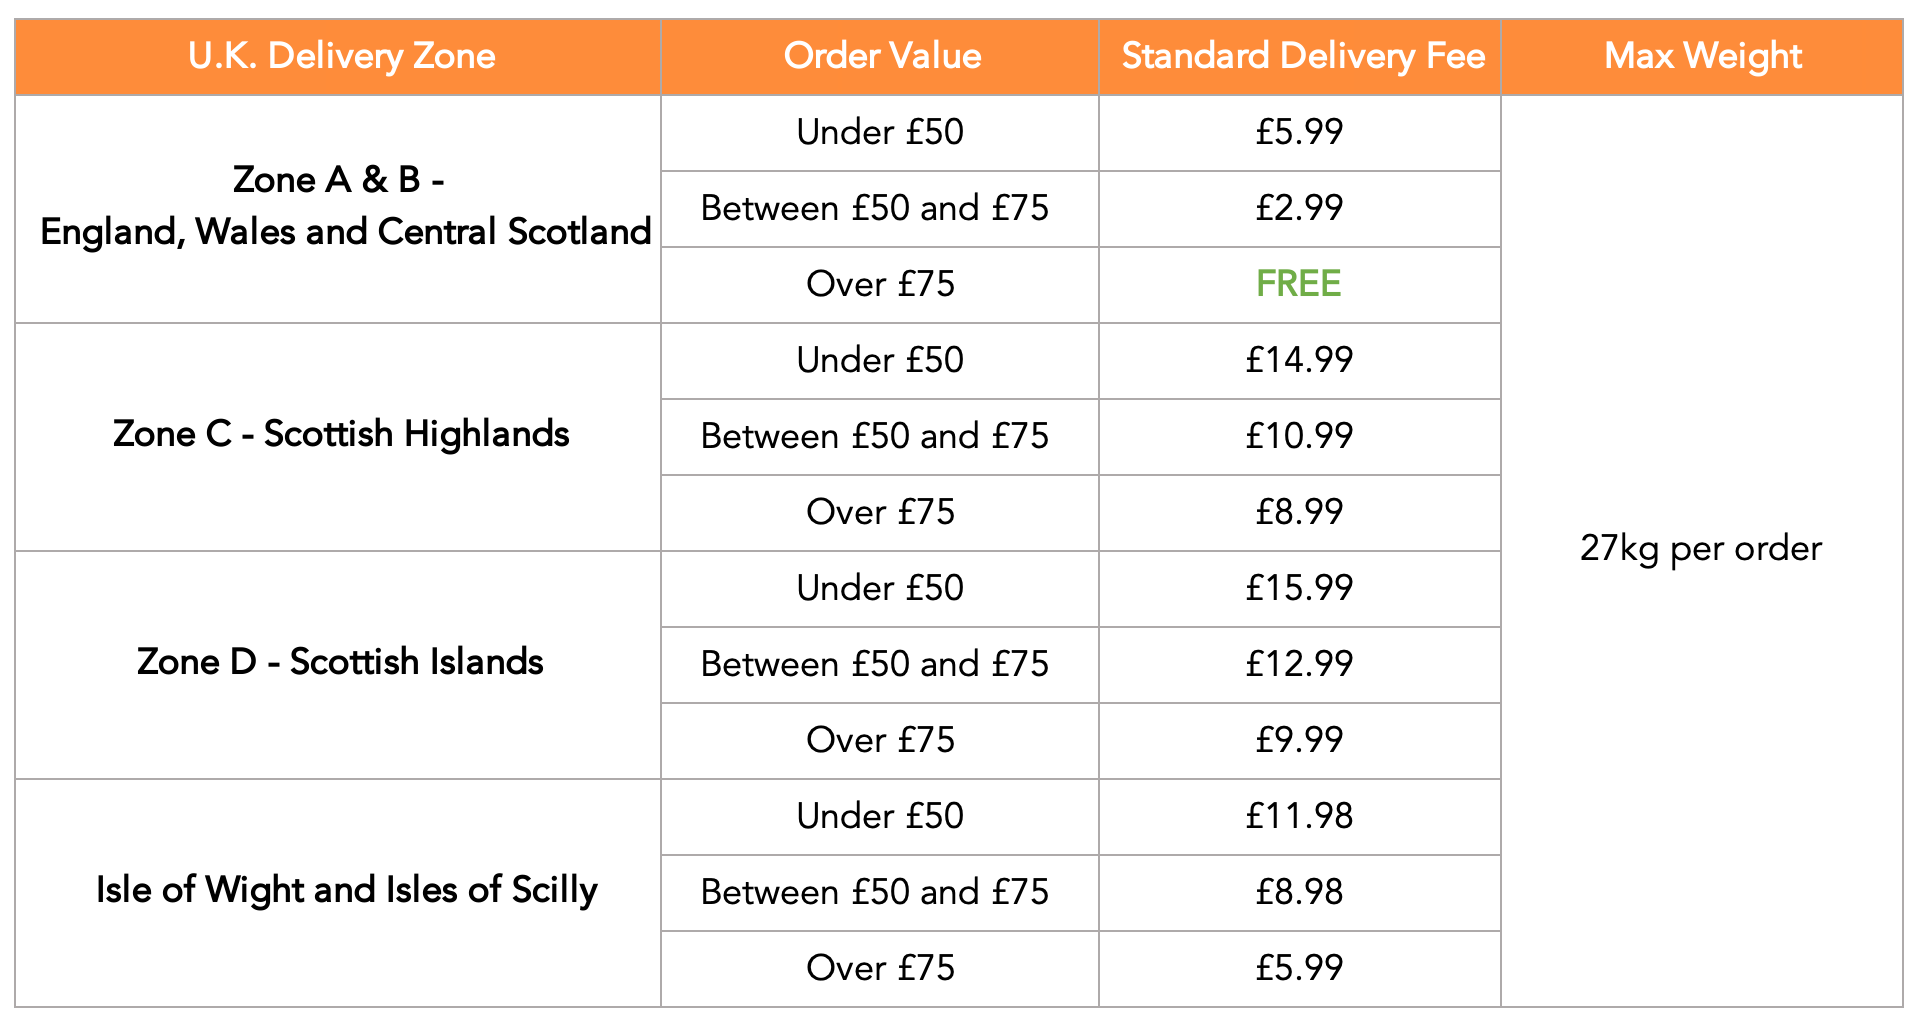 UK Standard Delivery Fees